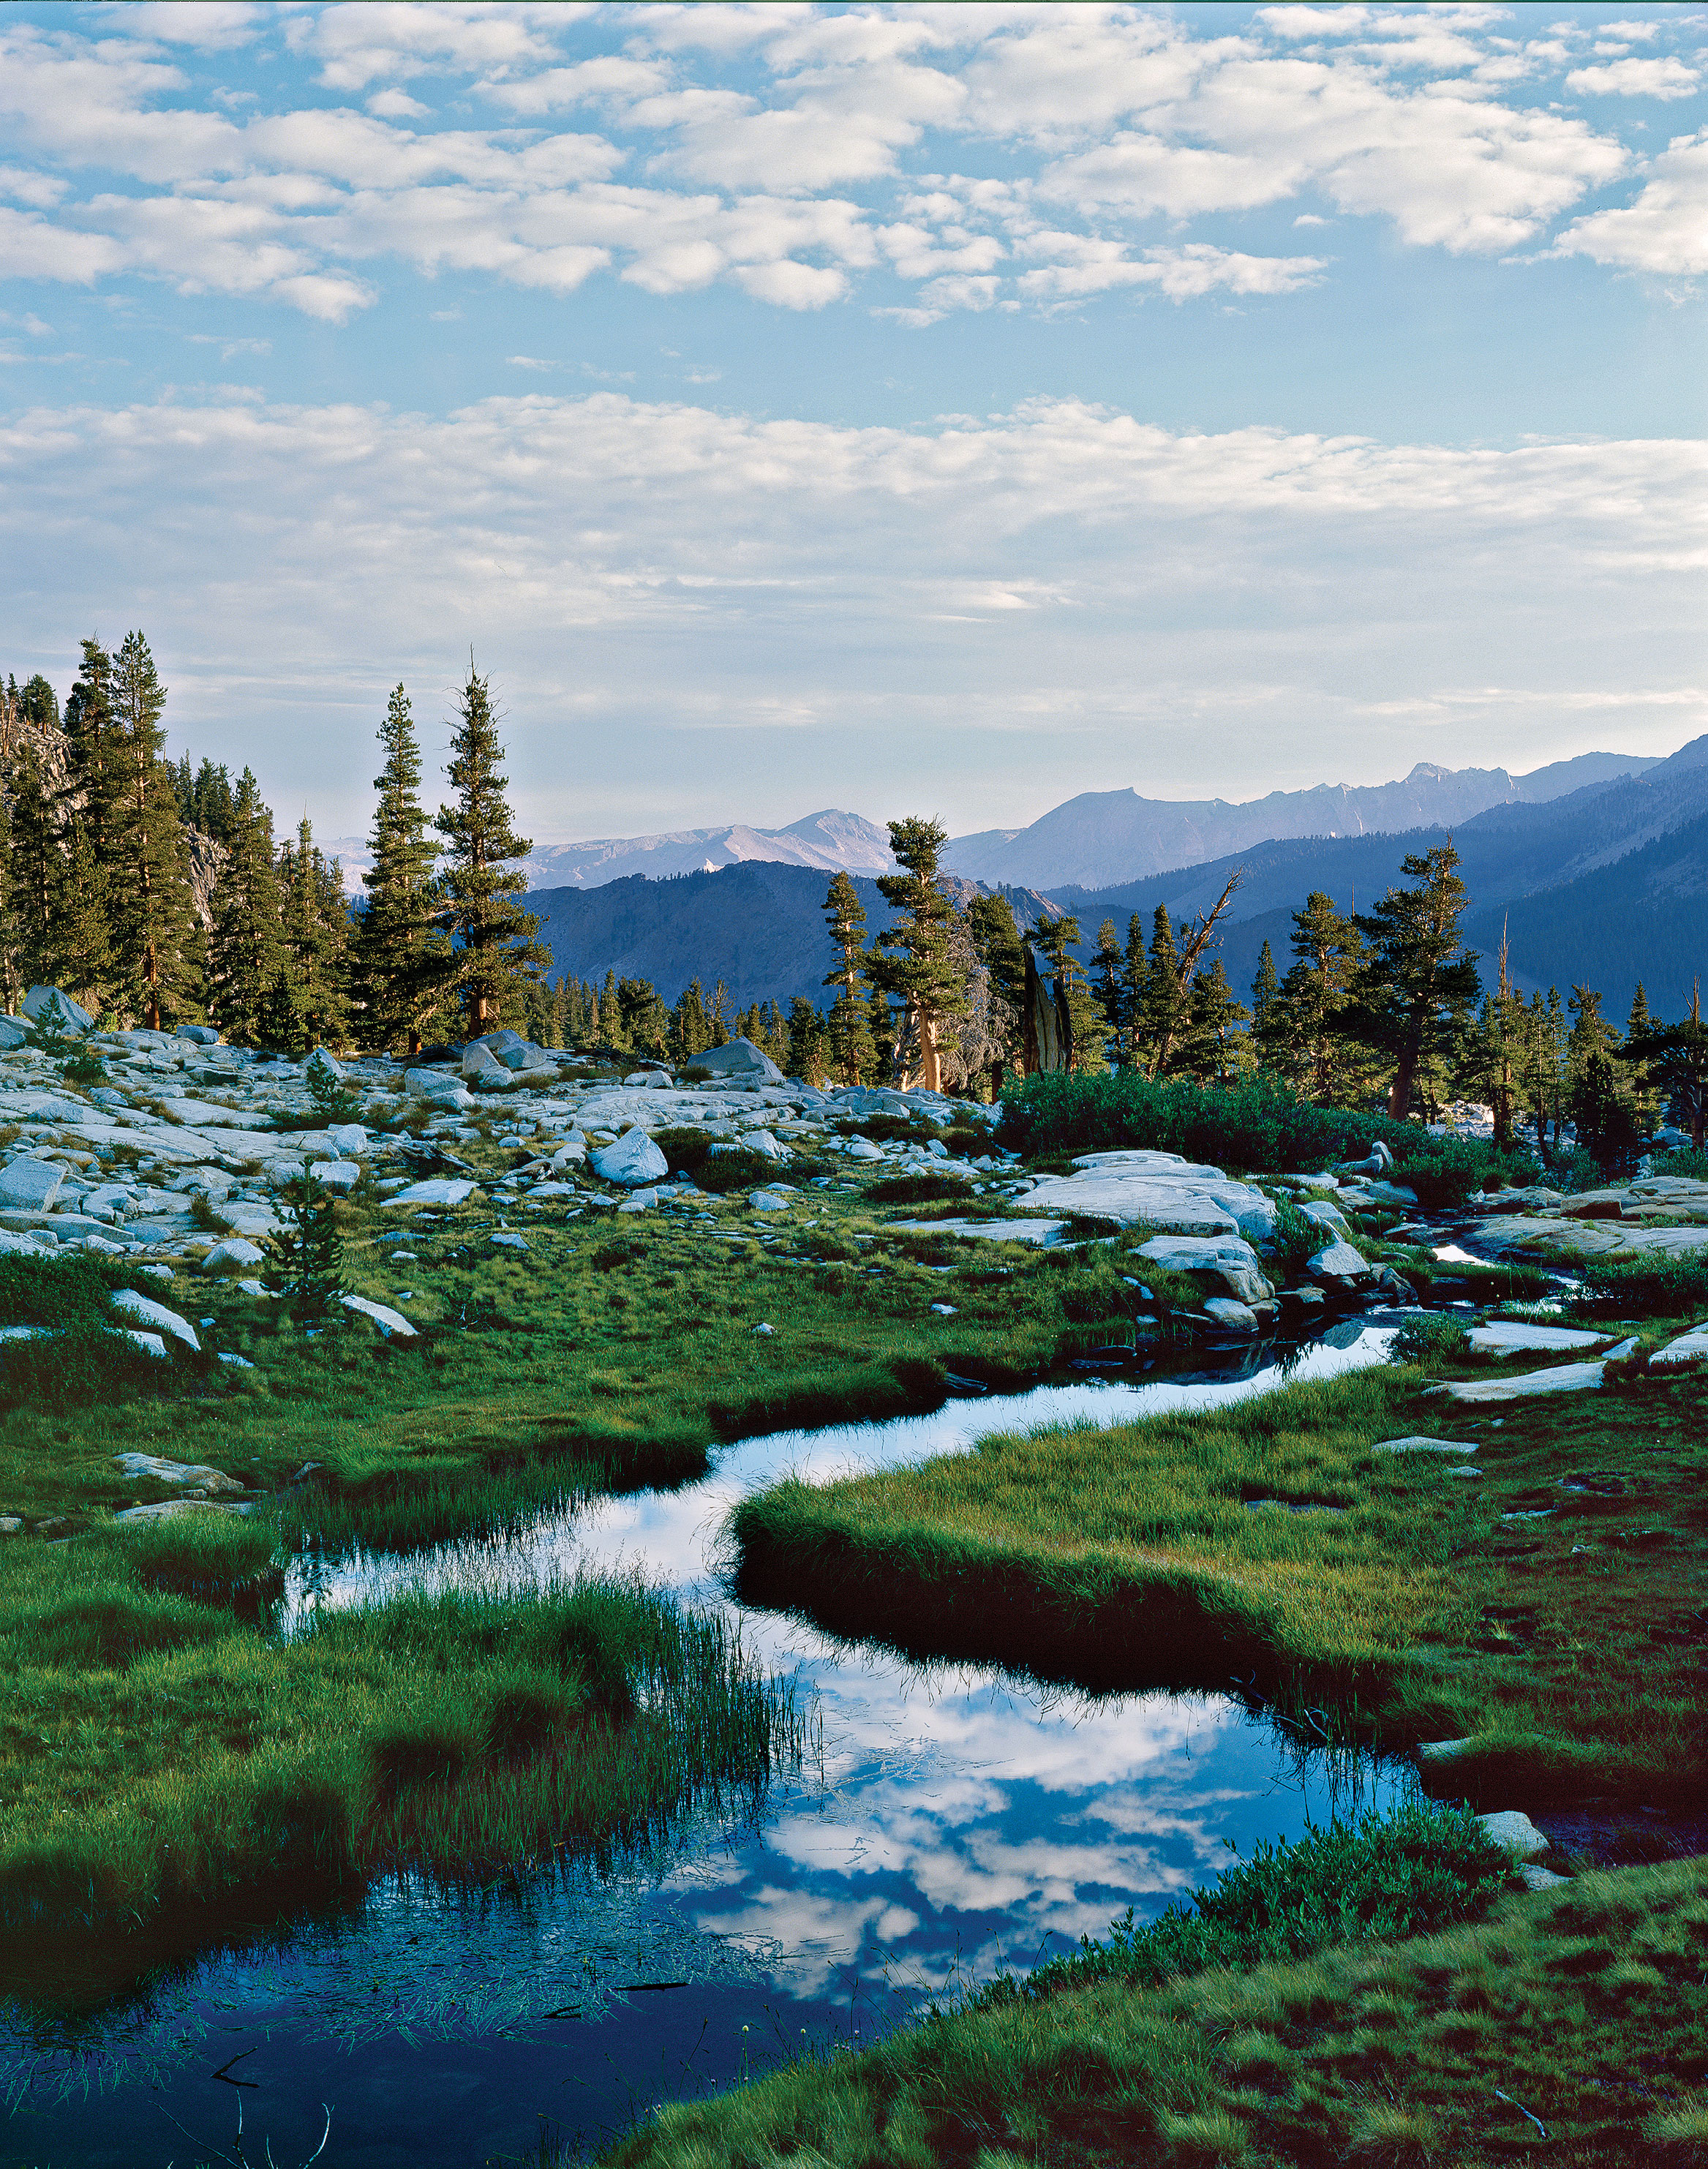 Sequoia and Kings Canyon National Parks Guide